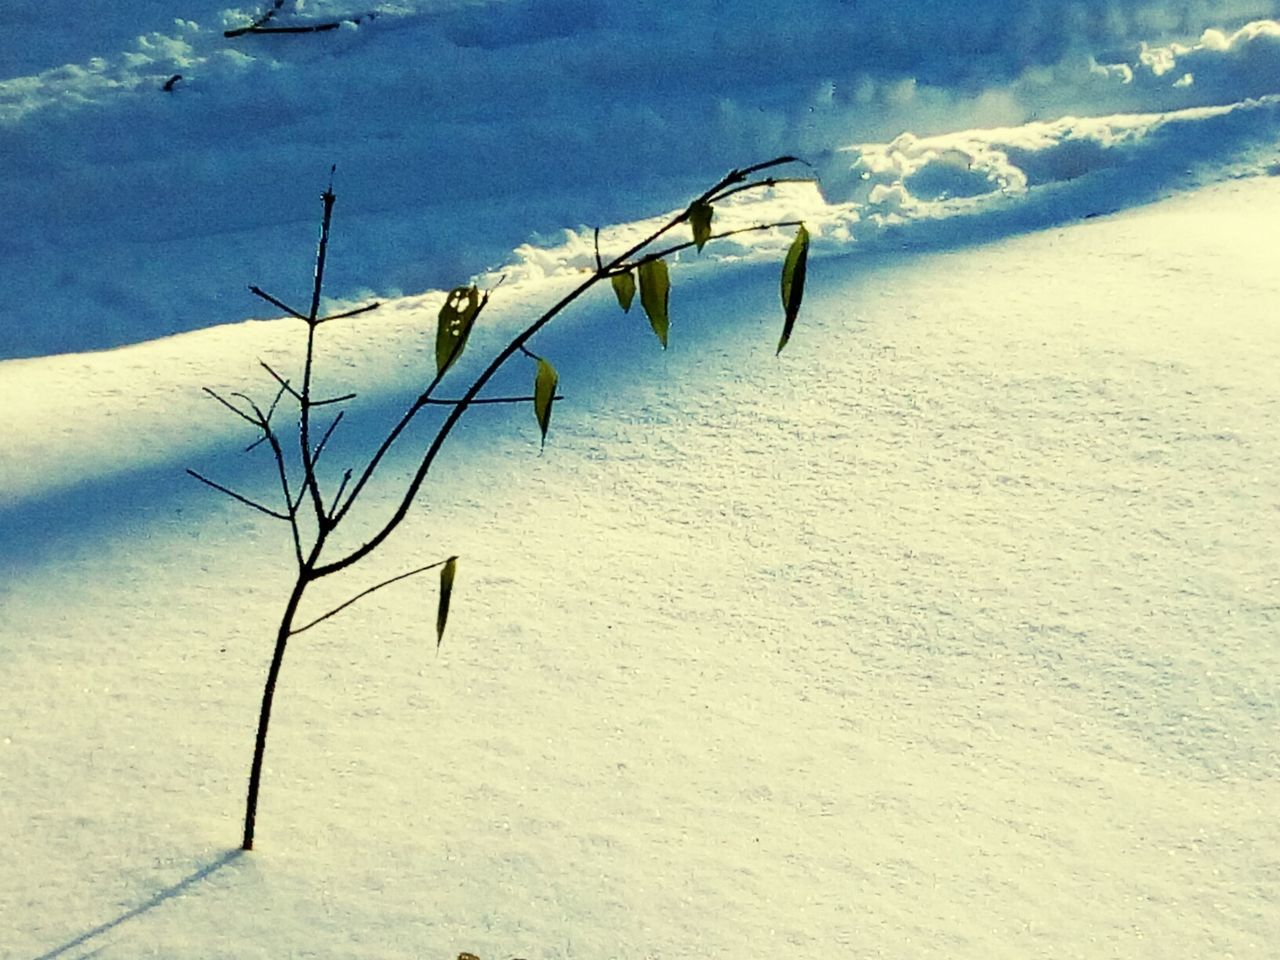 Sand Nature Outdoors Snow No People Day Beach Cold Temperature Beauty In Nature Sky Tree Weather Scenics Forest Bare Tree Close-up EyeEm Nature Lover The Great Outdoors - 2016 EyeEm Awards Shadow Landscape Tranquility Beauty In Nature Frozen Nature_collection Tree Trunk